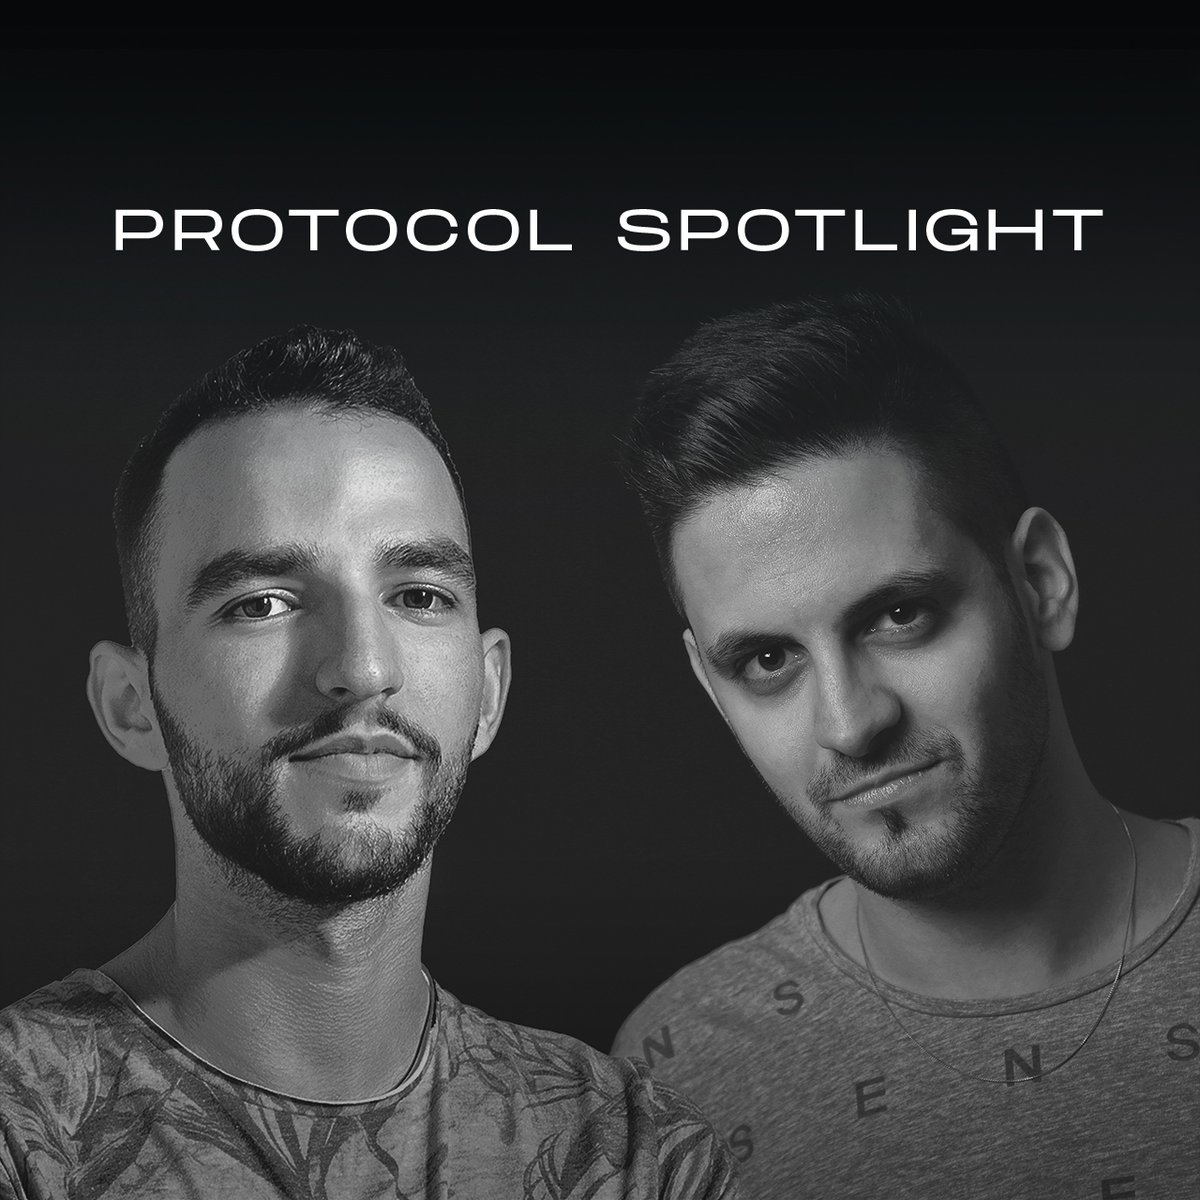 Fresh Protocol Spotlight Playlist! 🎧 This week curated by @mantrastics & Rechler! 👉 Listen now on #Spotify #AppleMusic or #Deezer: https://t.co/4v1YkZm1wR https://t.co/Qwh2TmRLx2